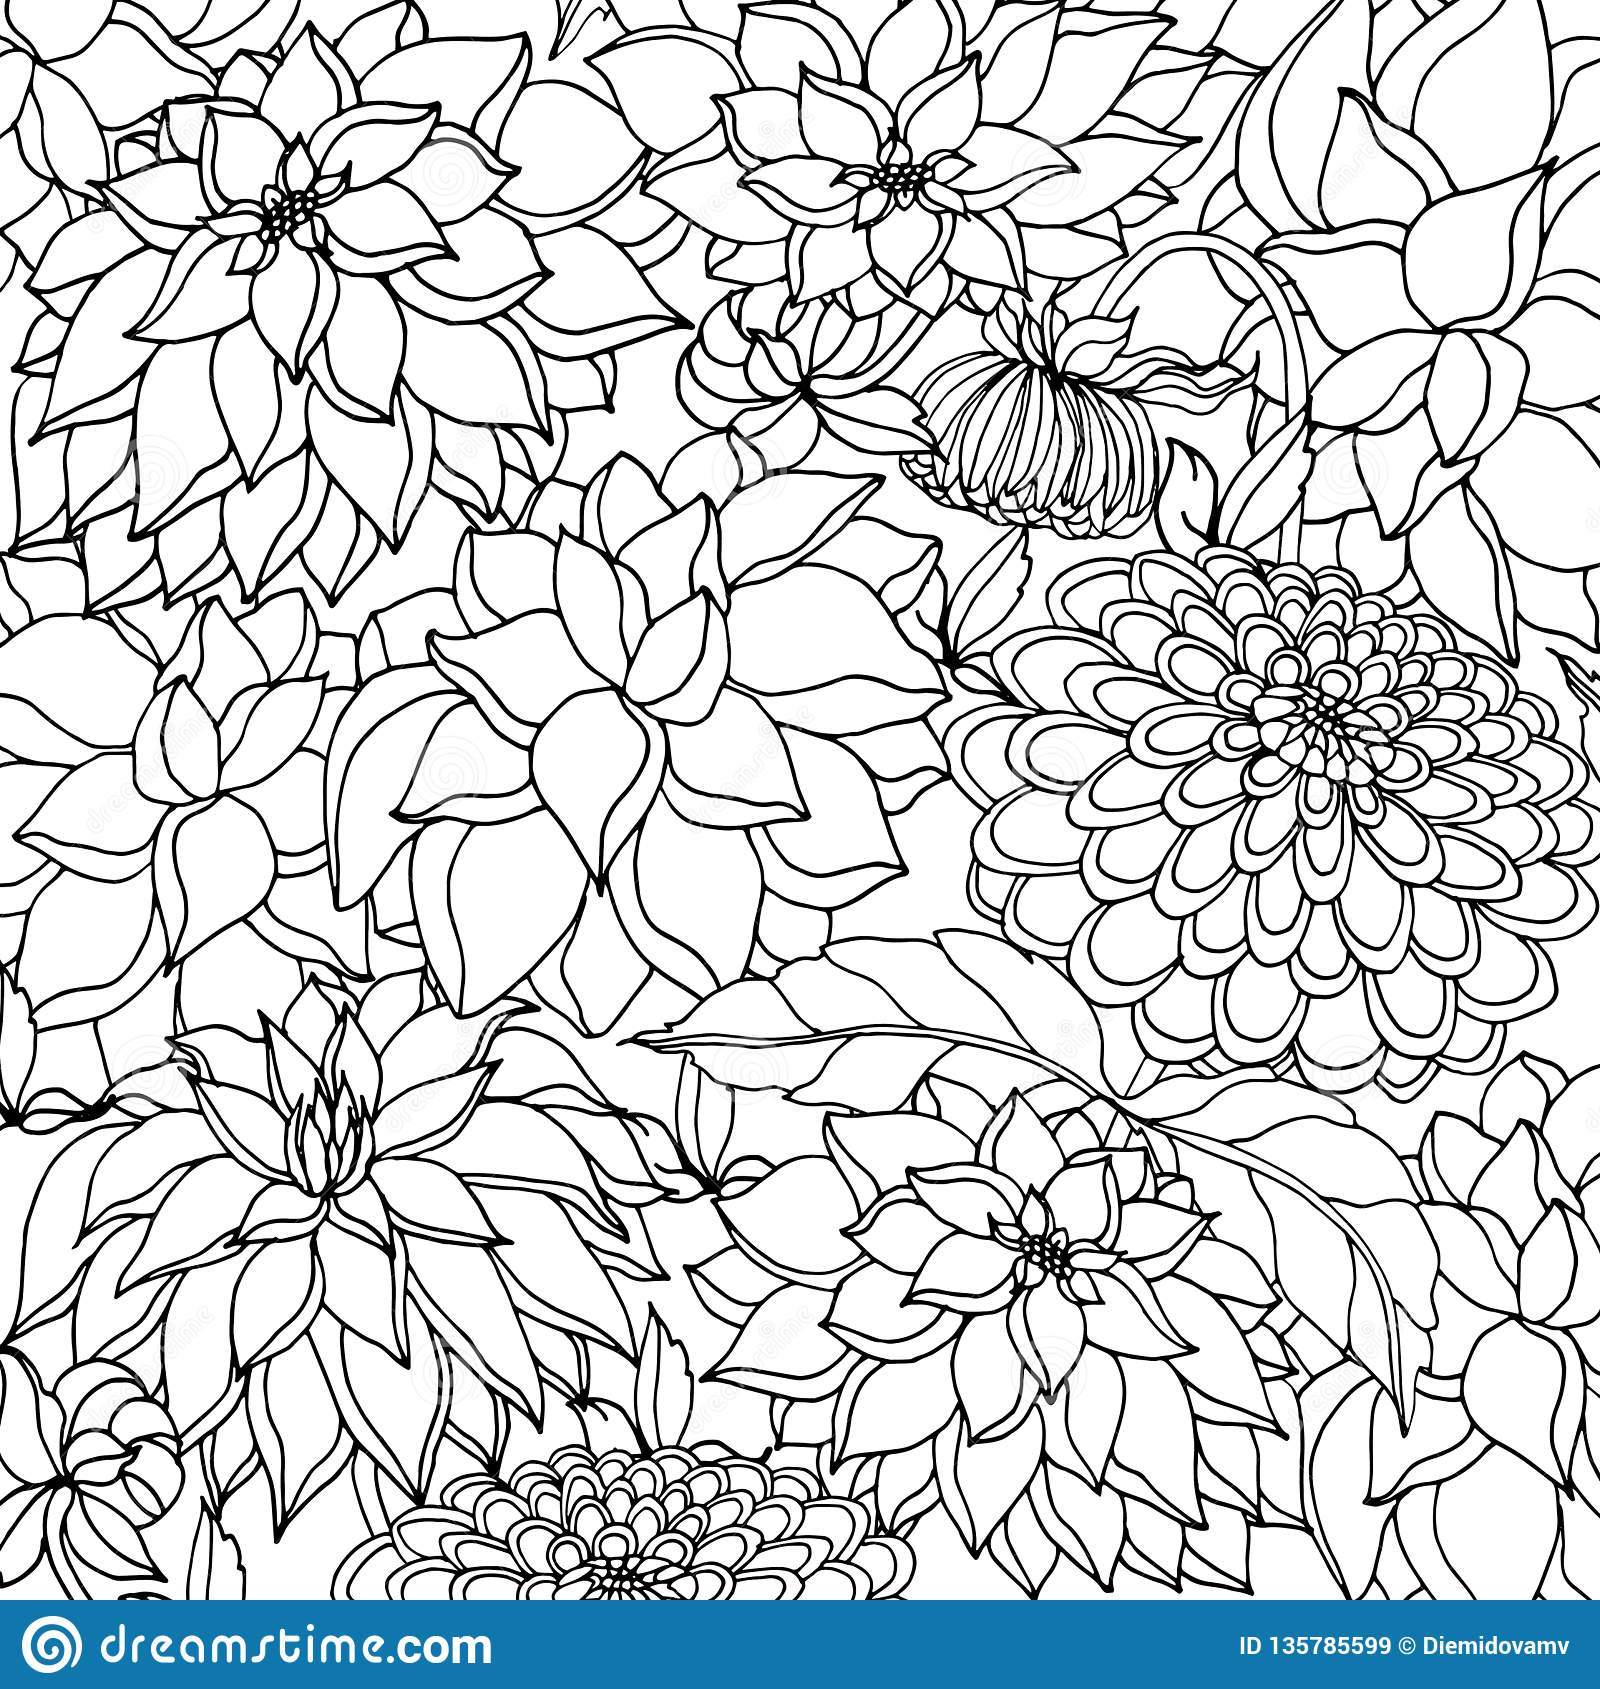 Doodle floral background in vector with doodles black and white coloring page